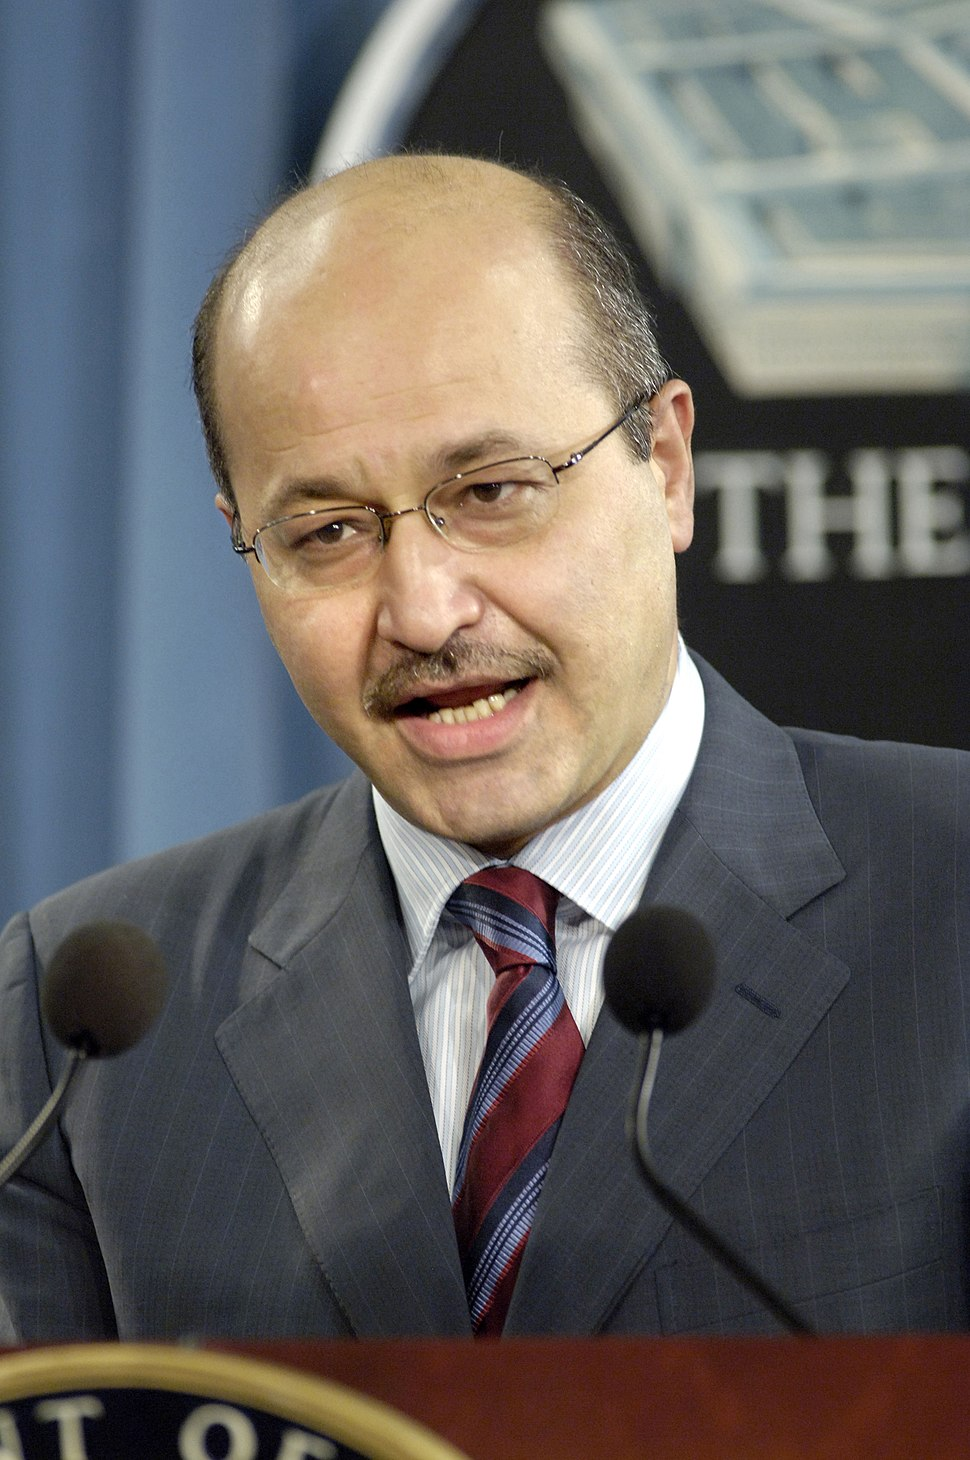 Barham Salih conducts a press conference in the Pentagon on Sept. 14, 2006